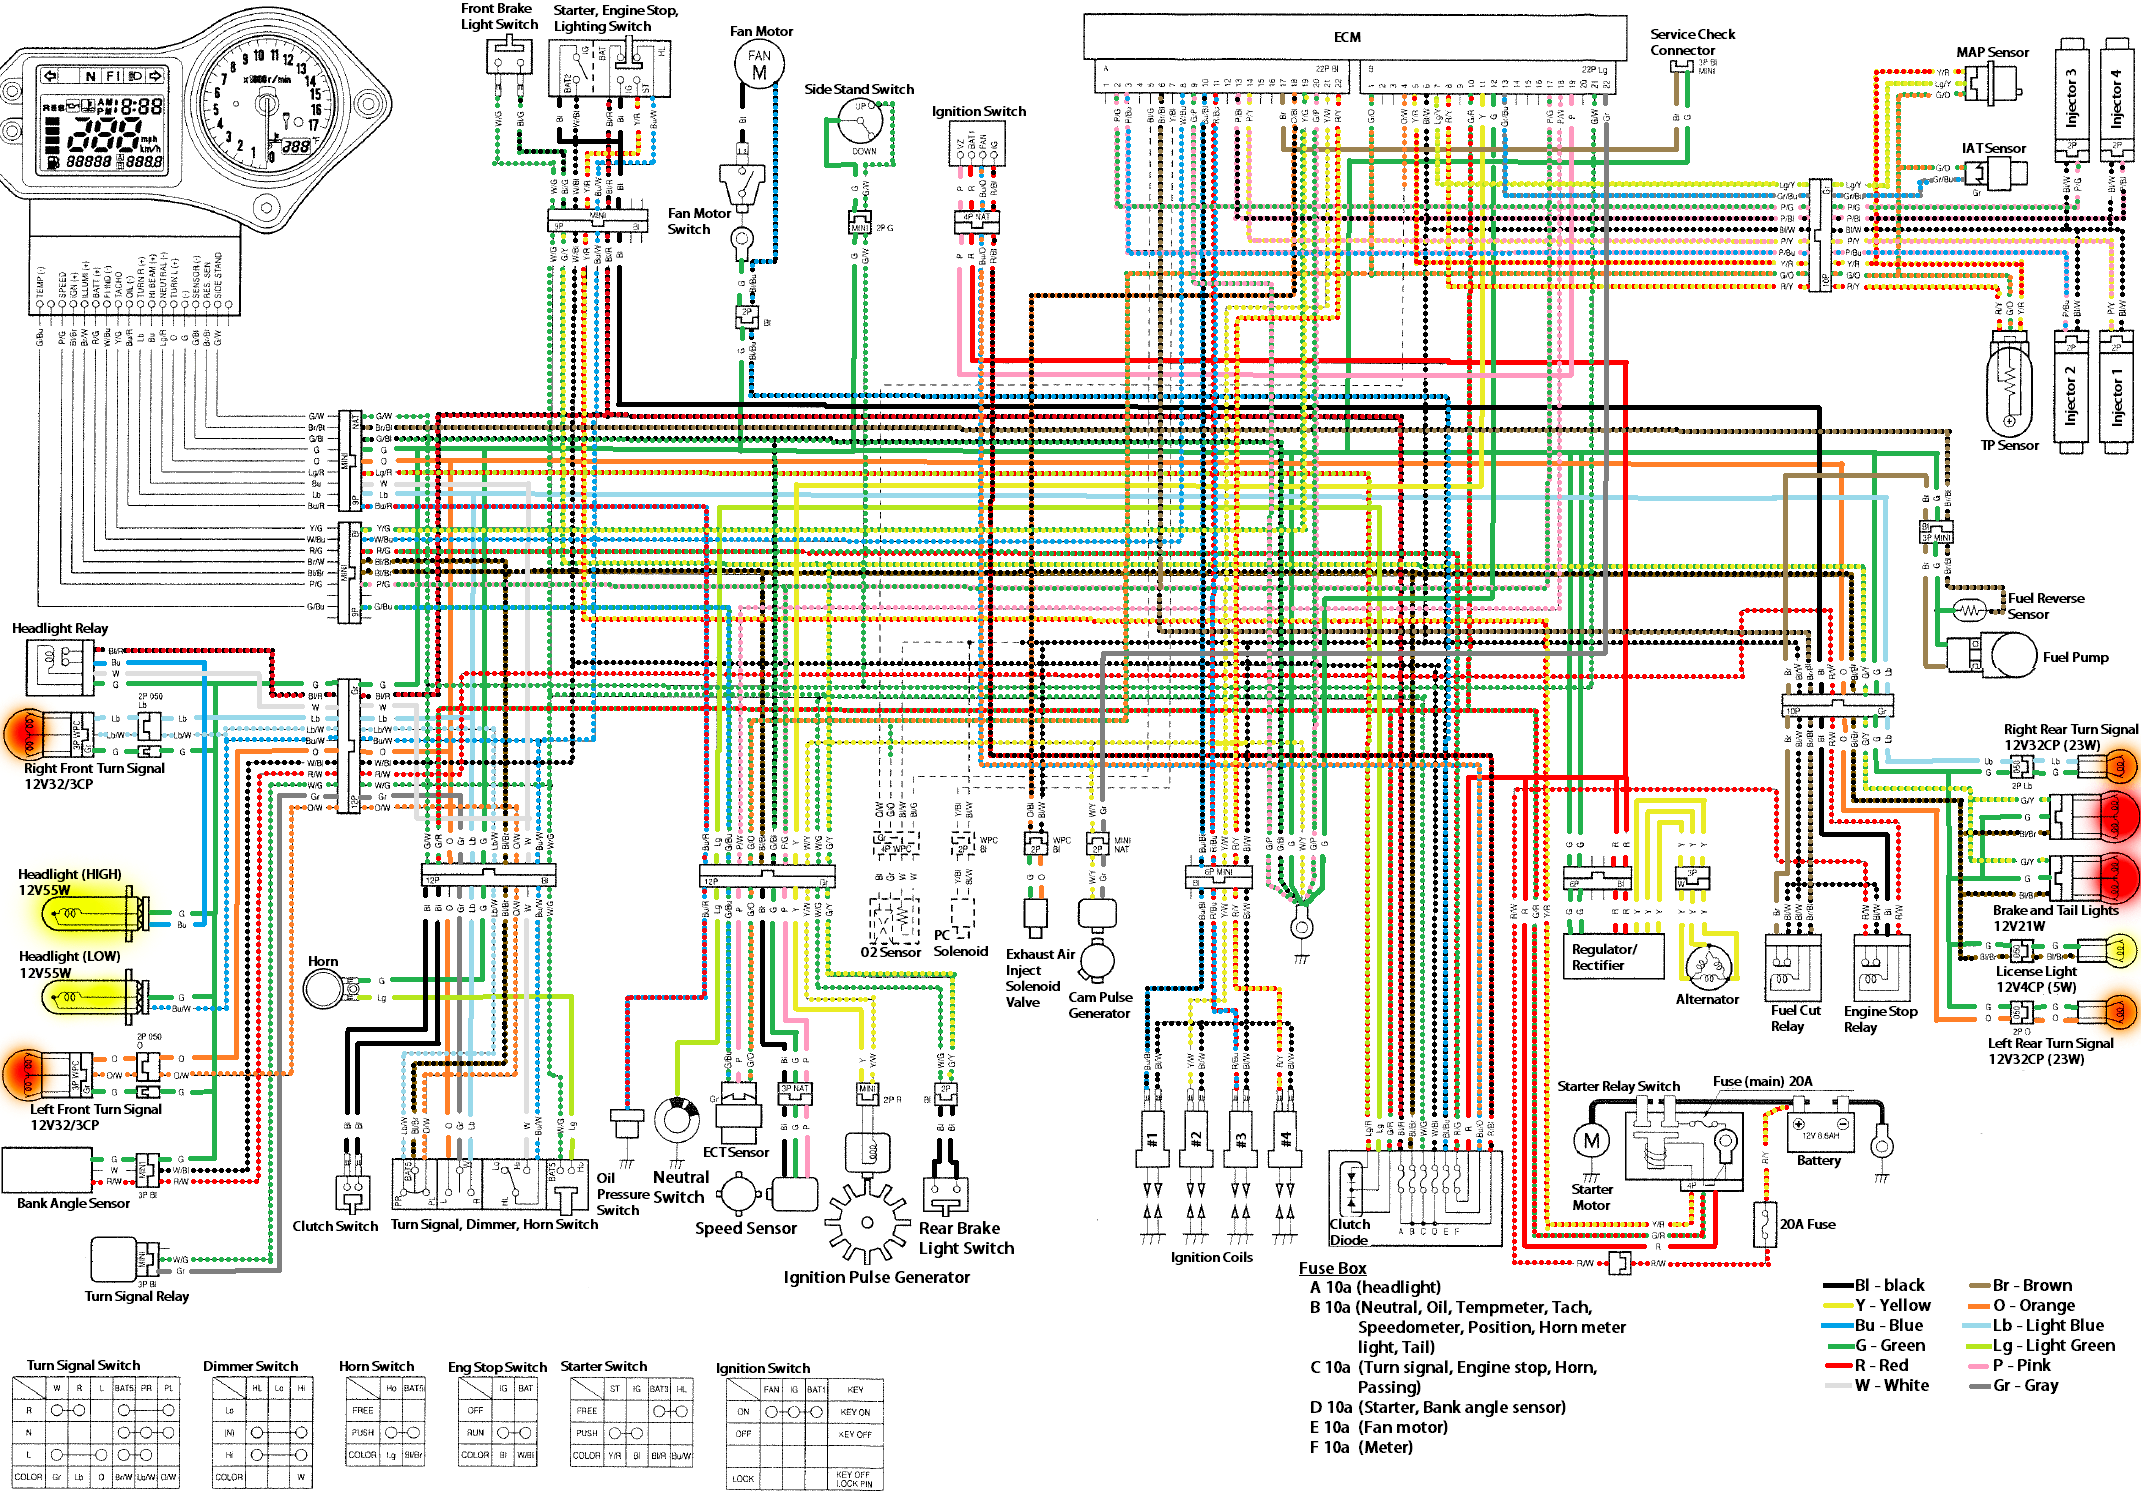 2003 Johnson 50 Hp Wiring Diagram 33 Images Maxrules Com Graphics Omc Tntwiring Gif Source Diagrams 620271 Ignition